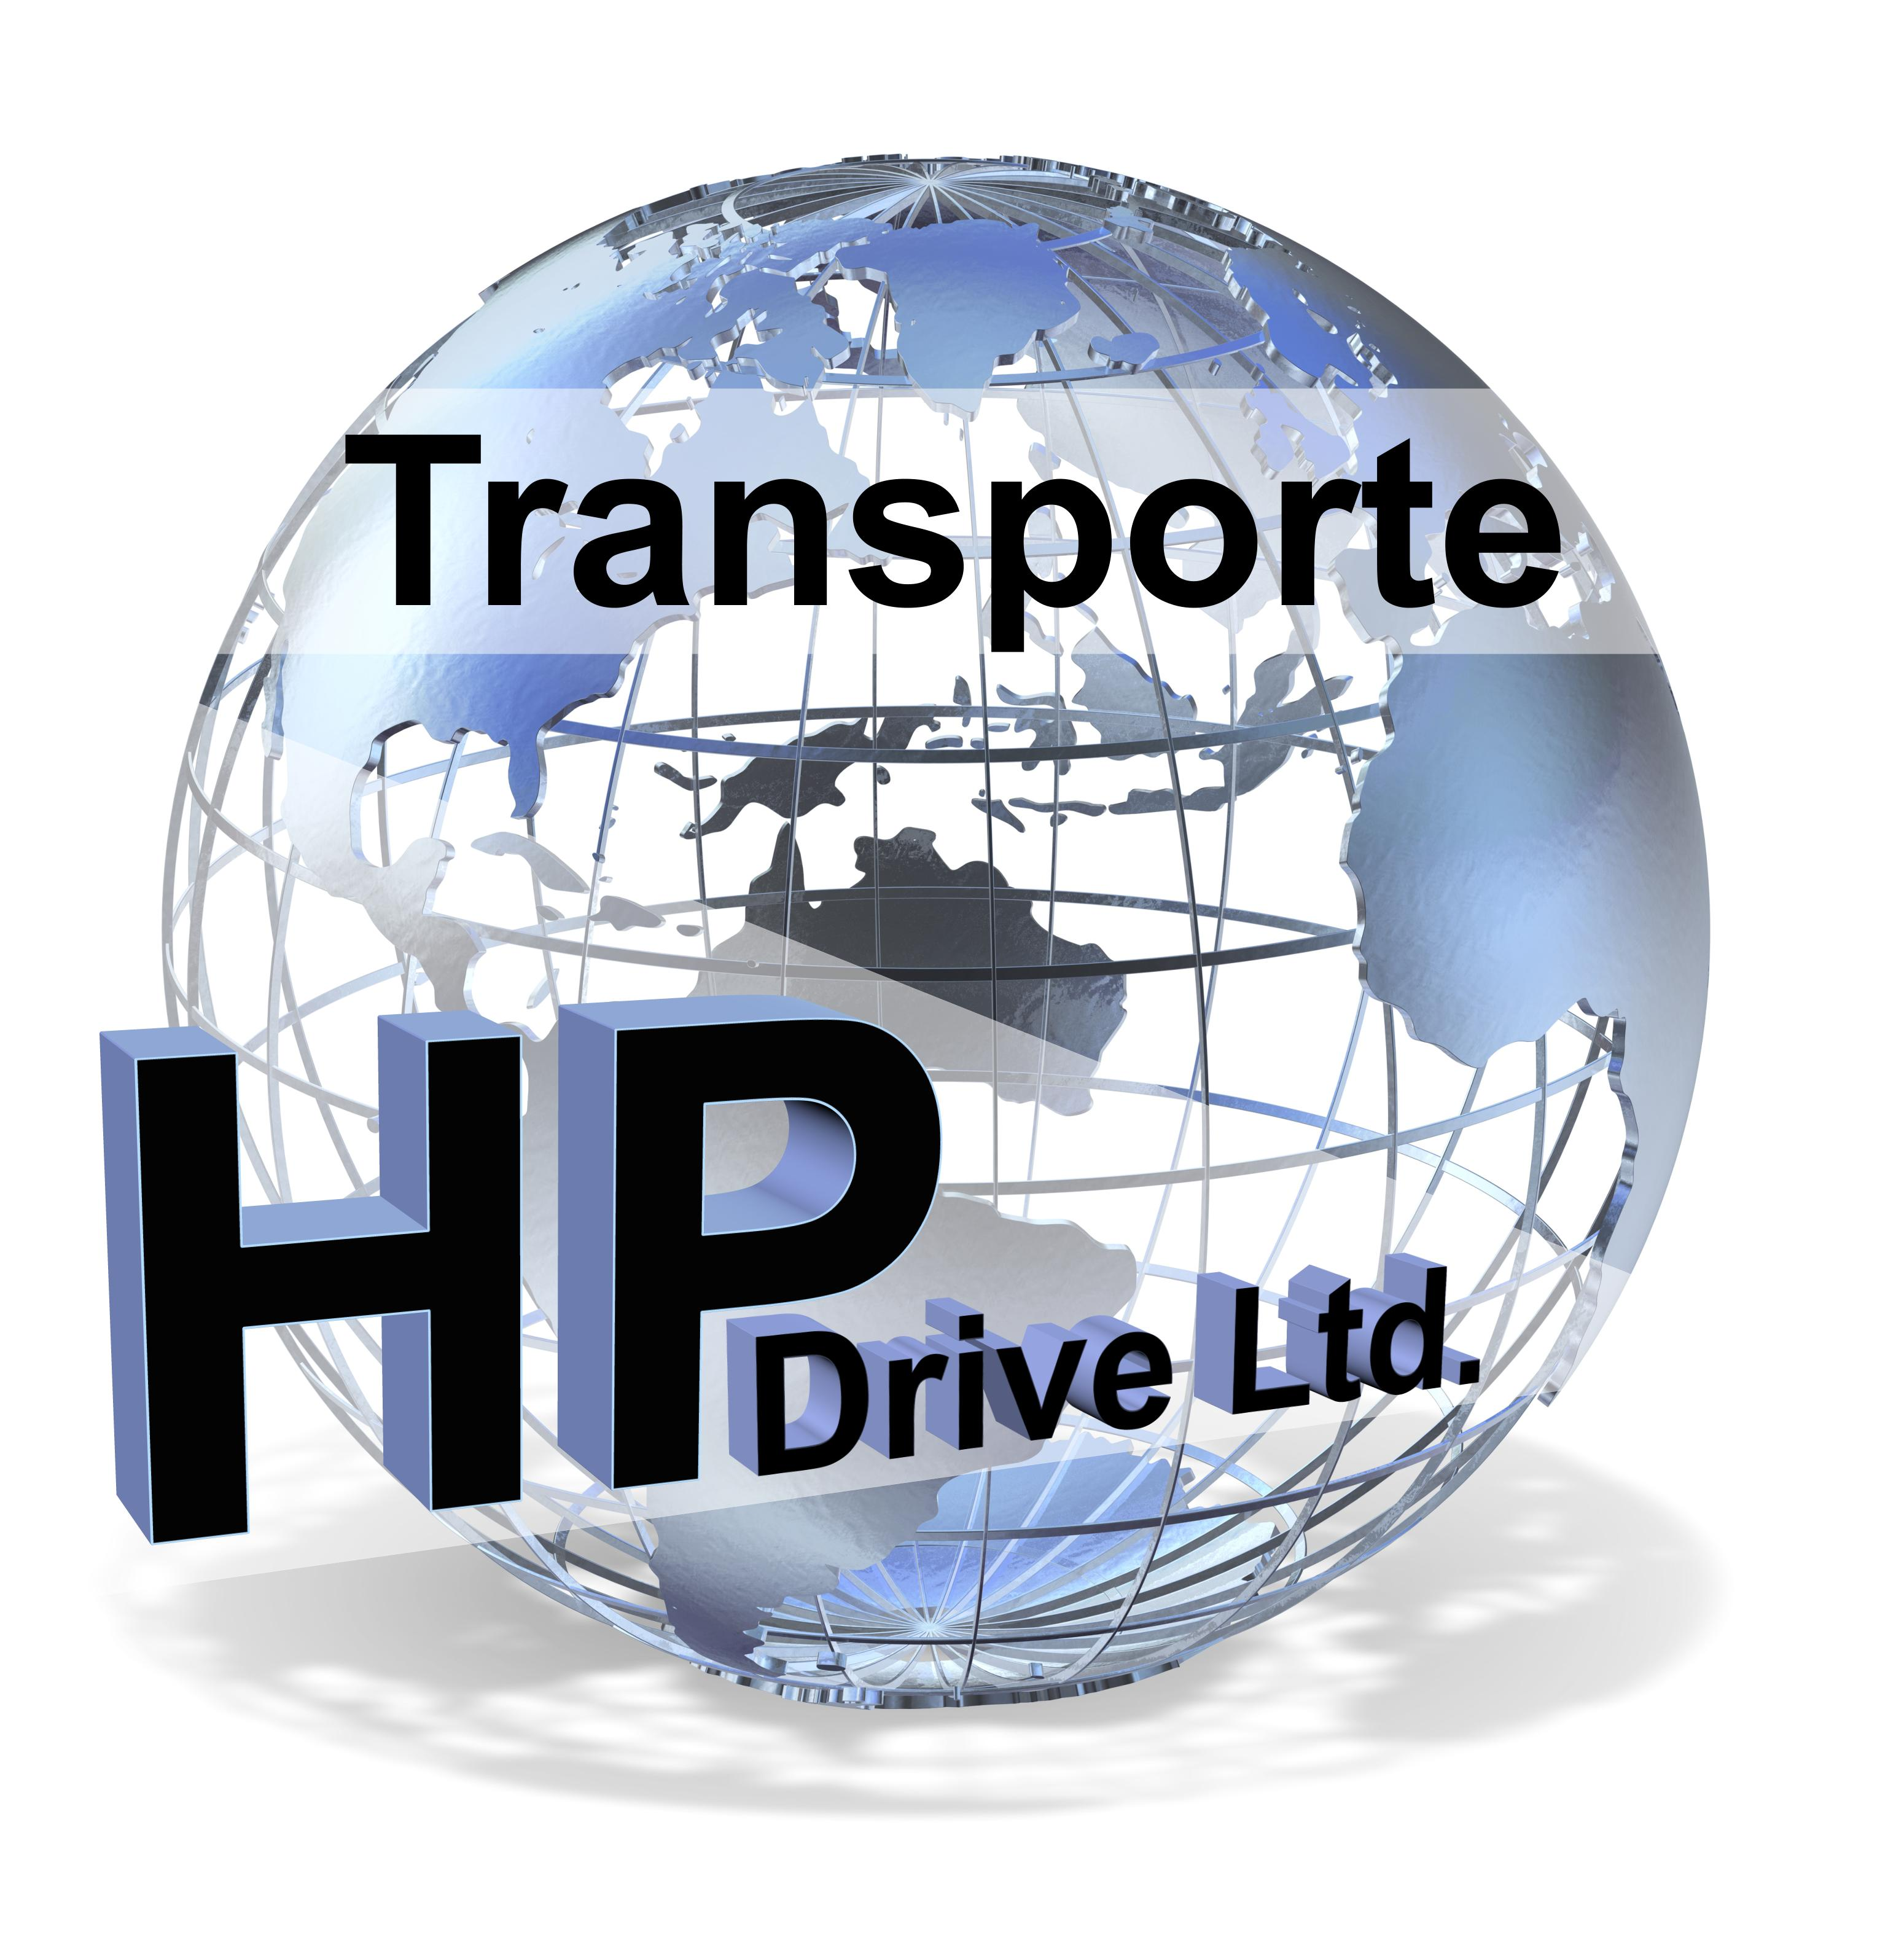 Transporte HP-Drive Ltd.